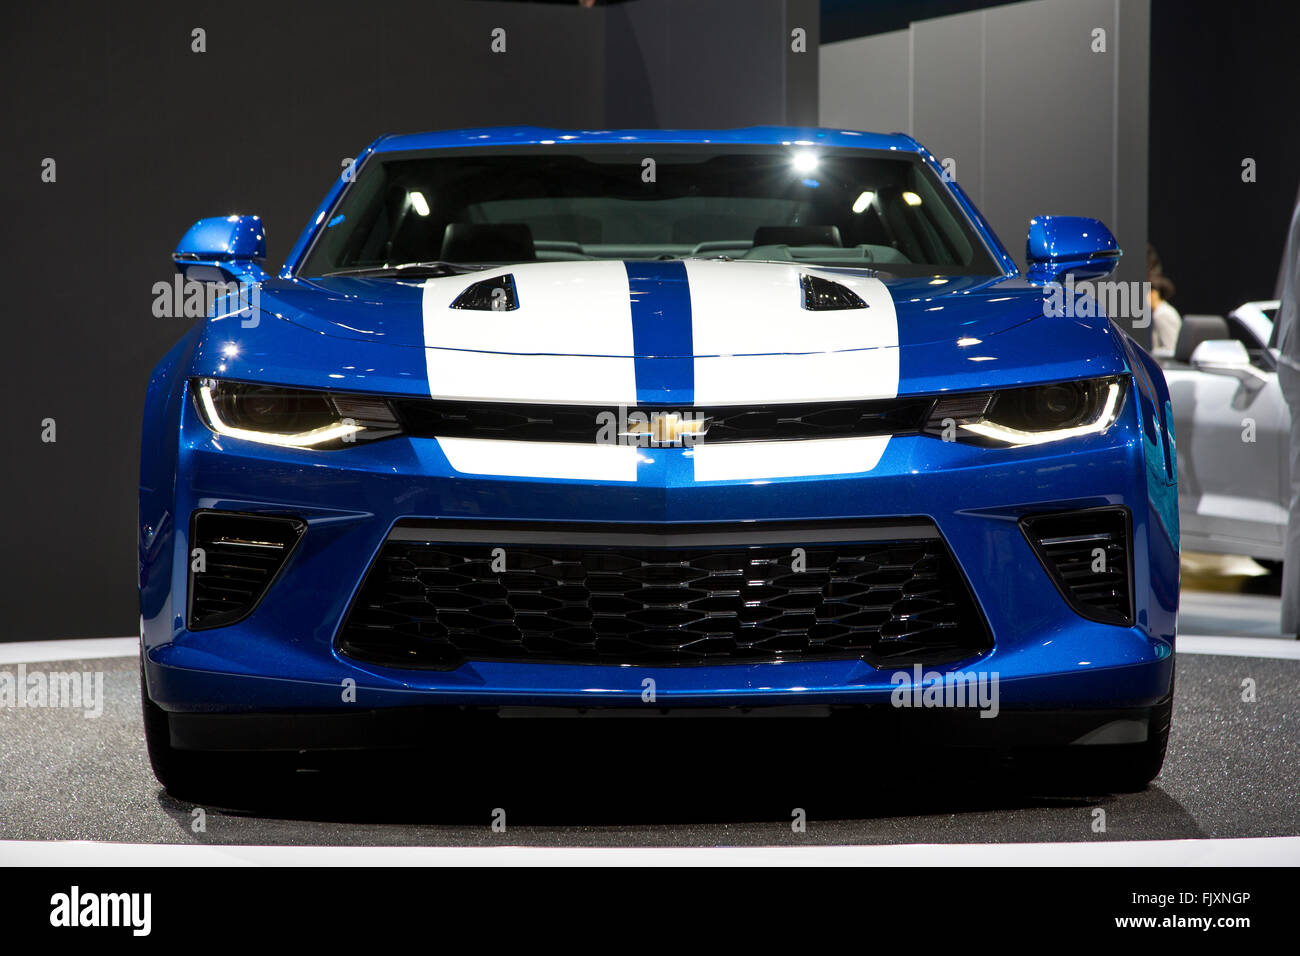 Chevrolet Camaro muscle car at the Geneva Motor Show 2016 - Stock Image